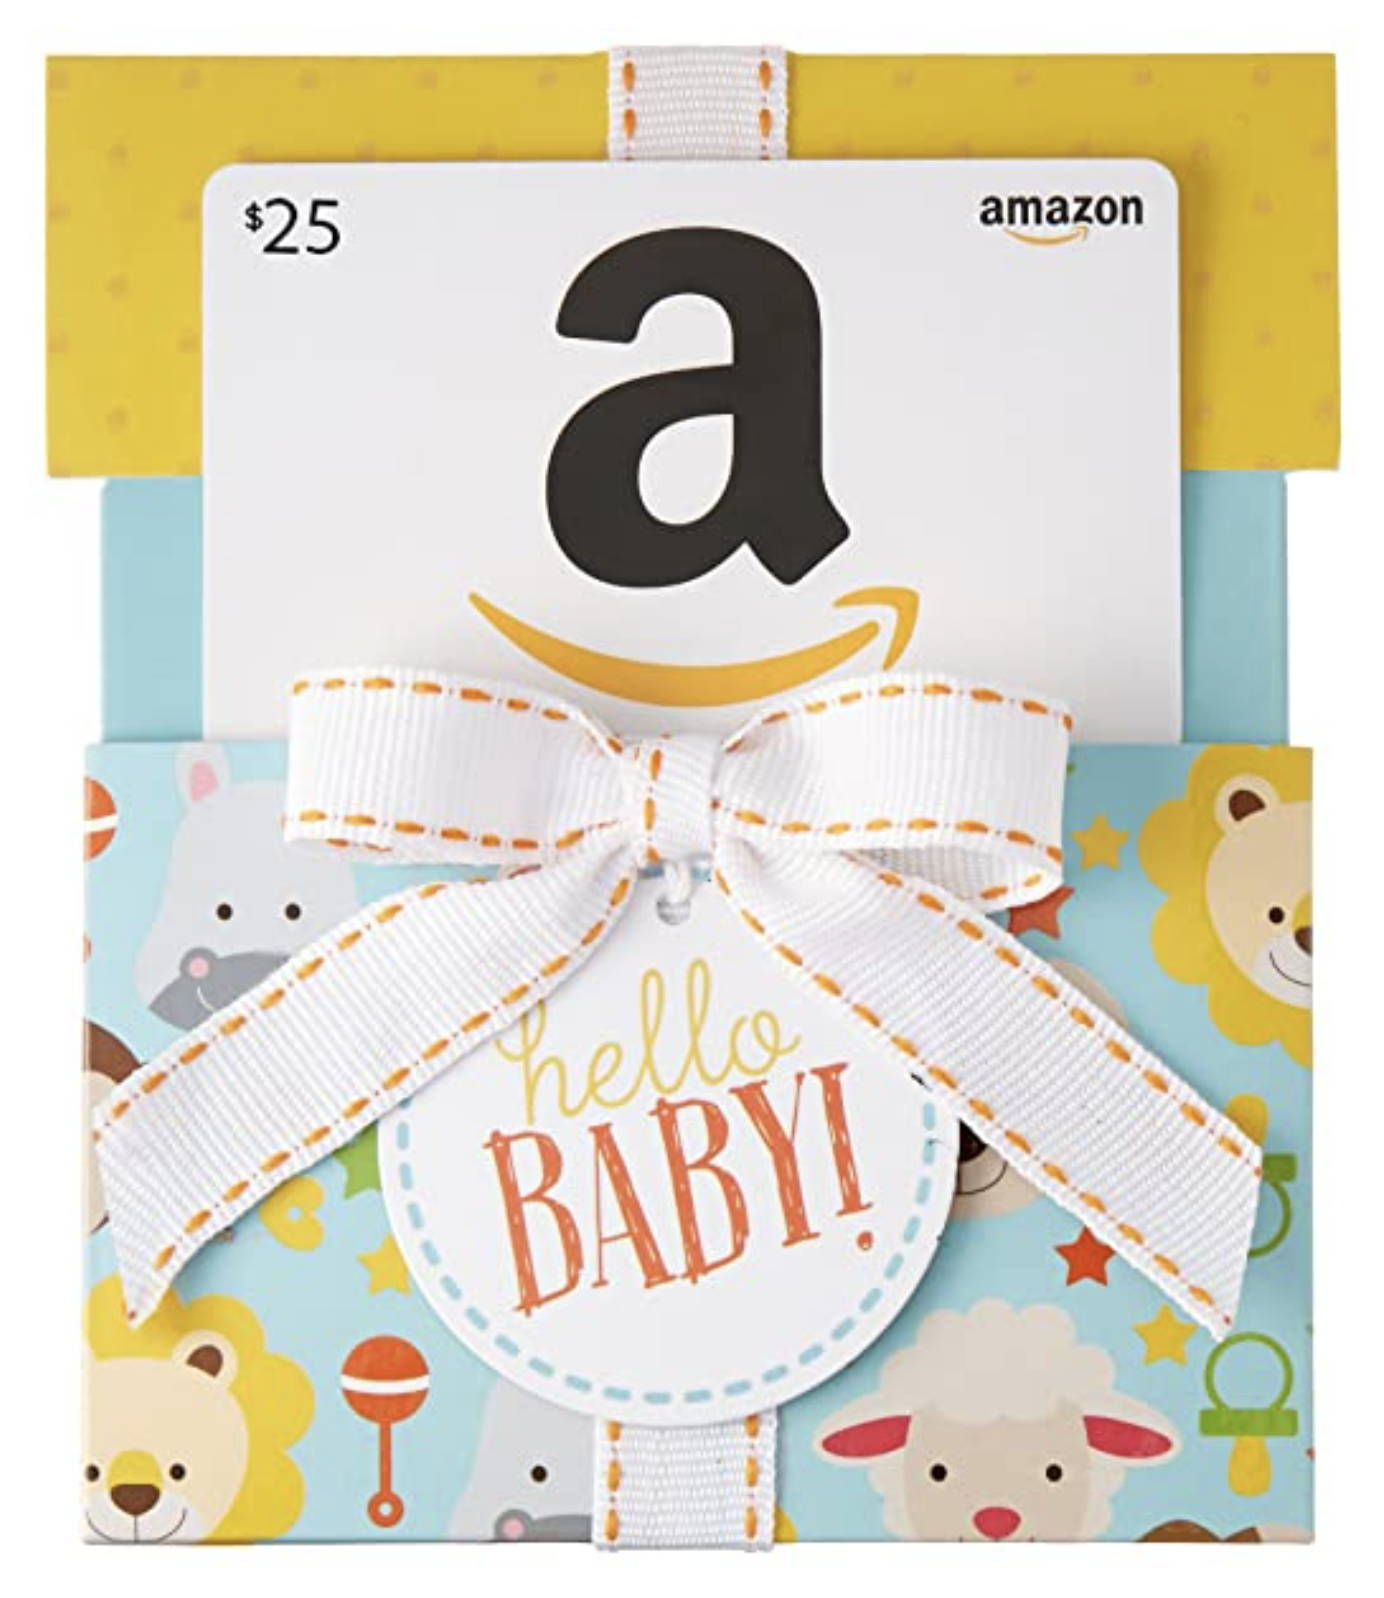 Amazon hello baby gift card makes ideal nicu mom gift